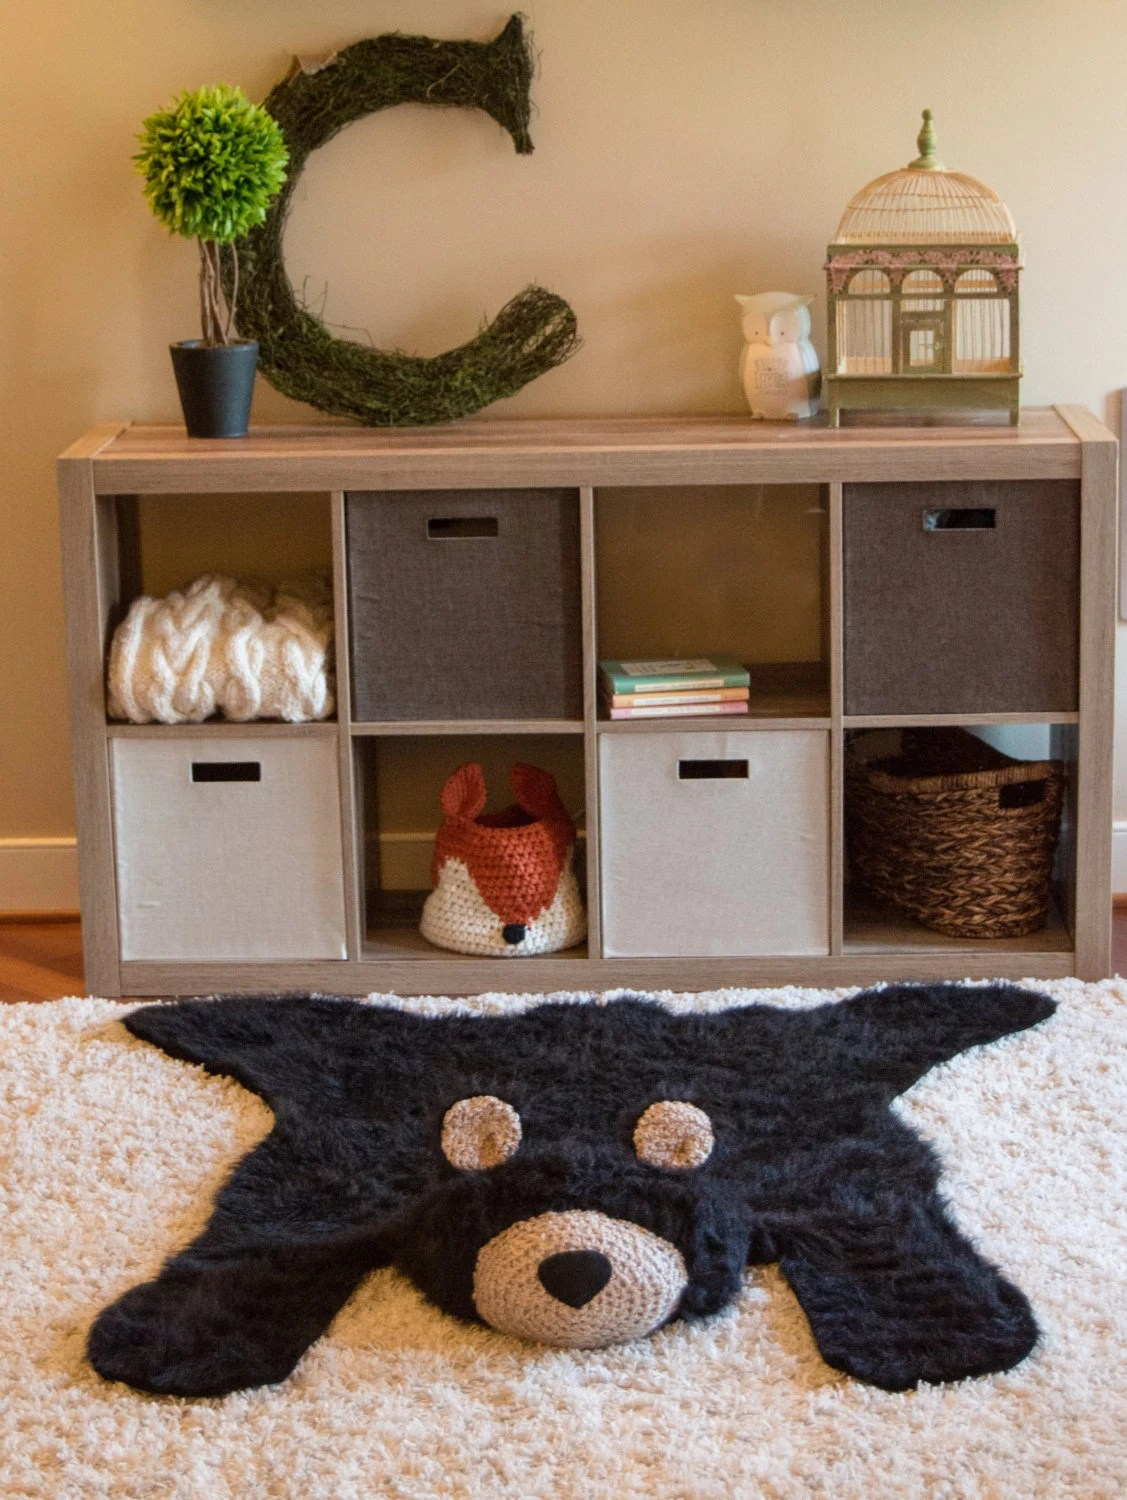 Baby Rugs For Nursery Room Black Bear Rug Faux Bear Rug L Woodland Nursery Baby Room